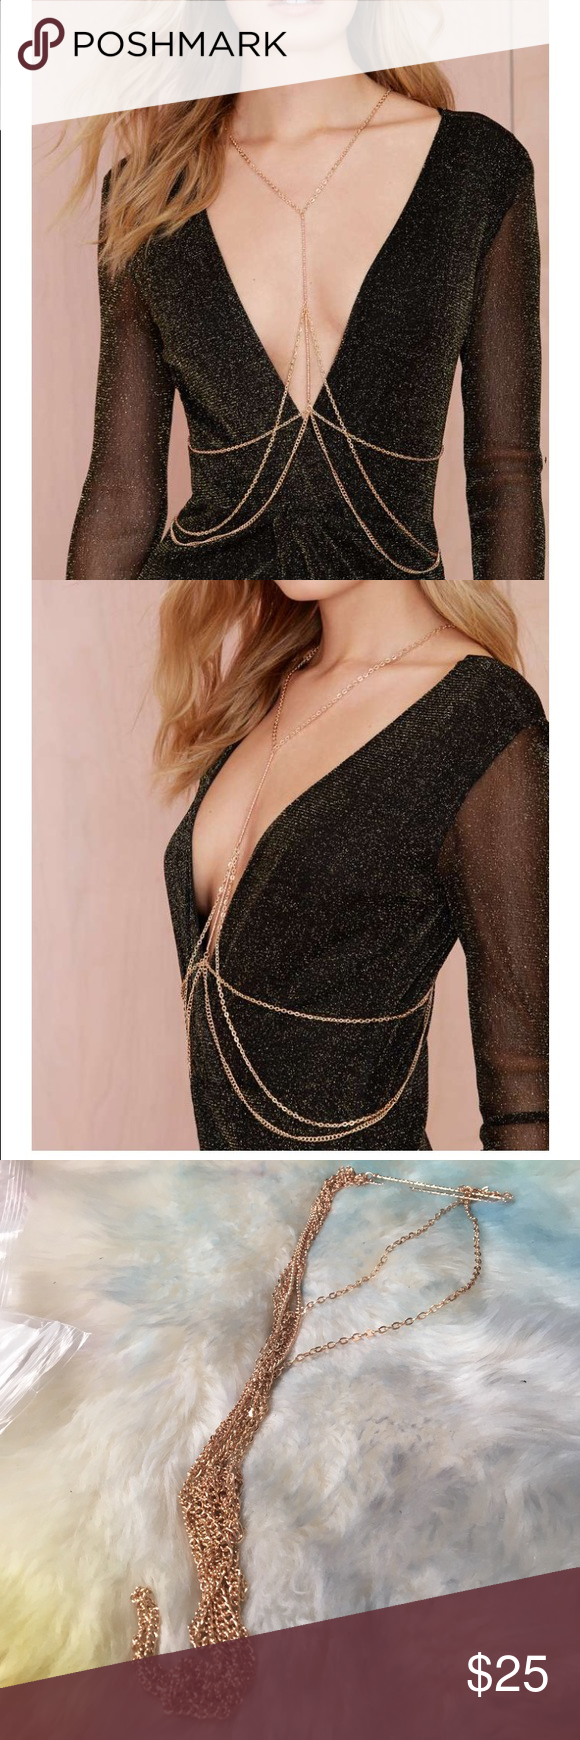 """#1243 nasty gal Heart of Gold Body Chain is made in inter-crossing rose gold chains and features dainty gold bar detail. Adjustable lobster clasp. Looks killer over a bodycon with drop earrings. *Sythetic materials *26""""/66cm length *Imported Nasty Gal Jewelry"""